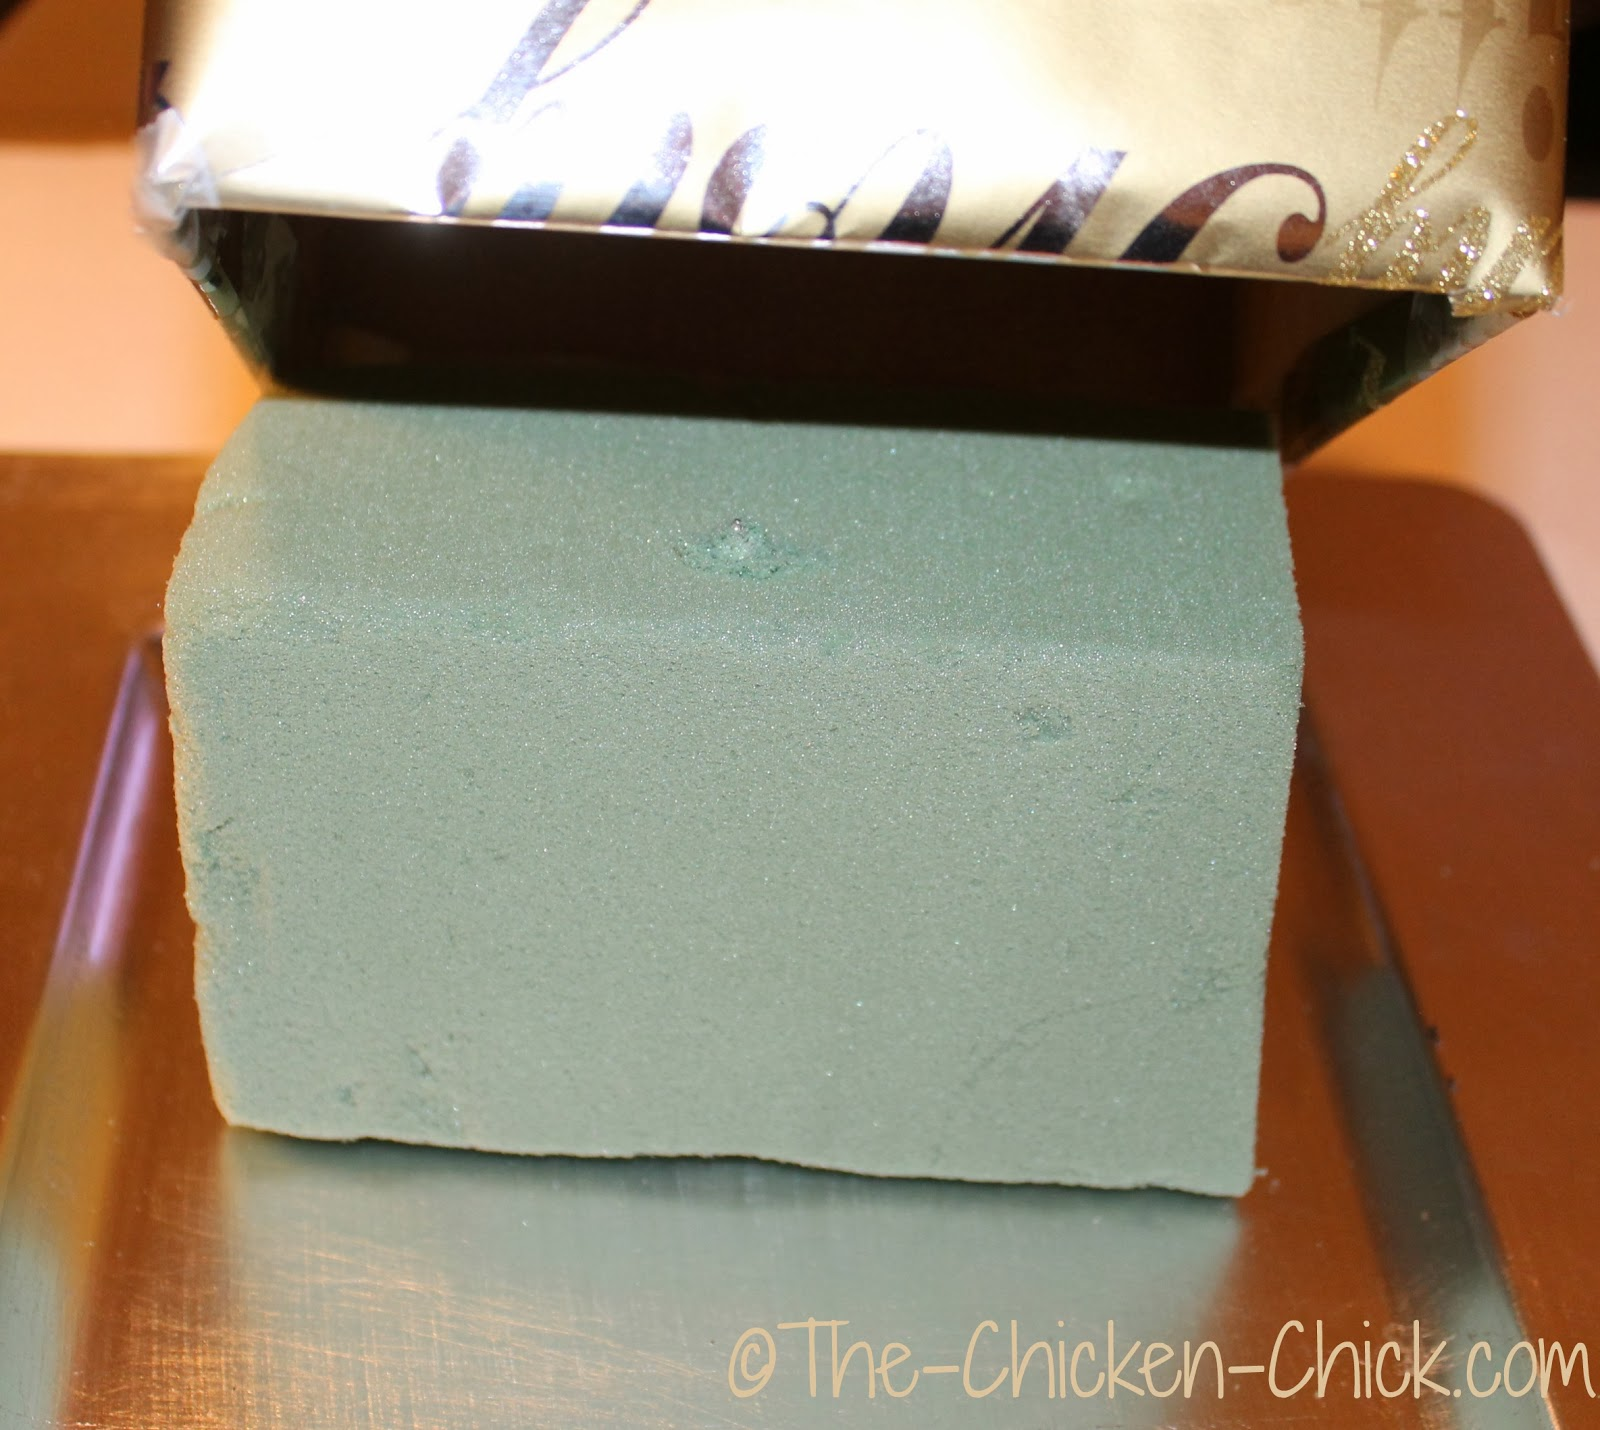 add bottom box to fit snugly over the top of the floral foam on cake base